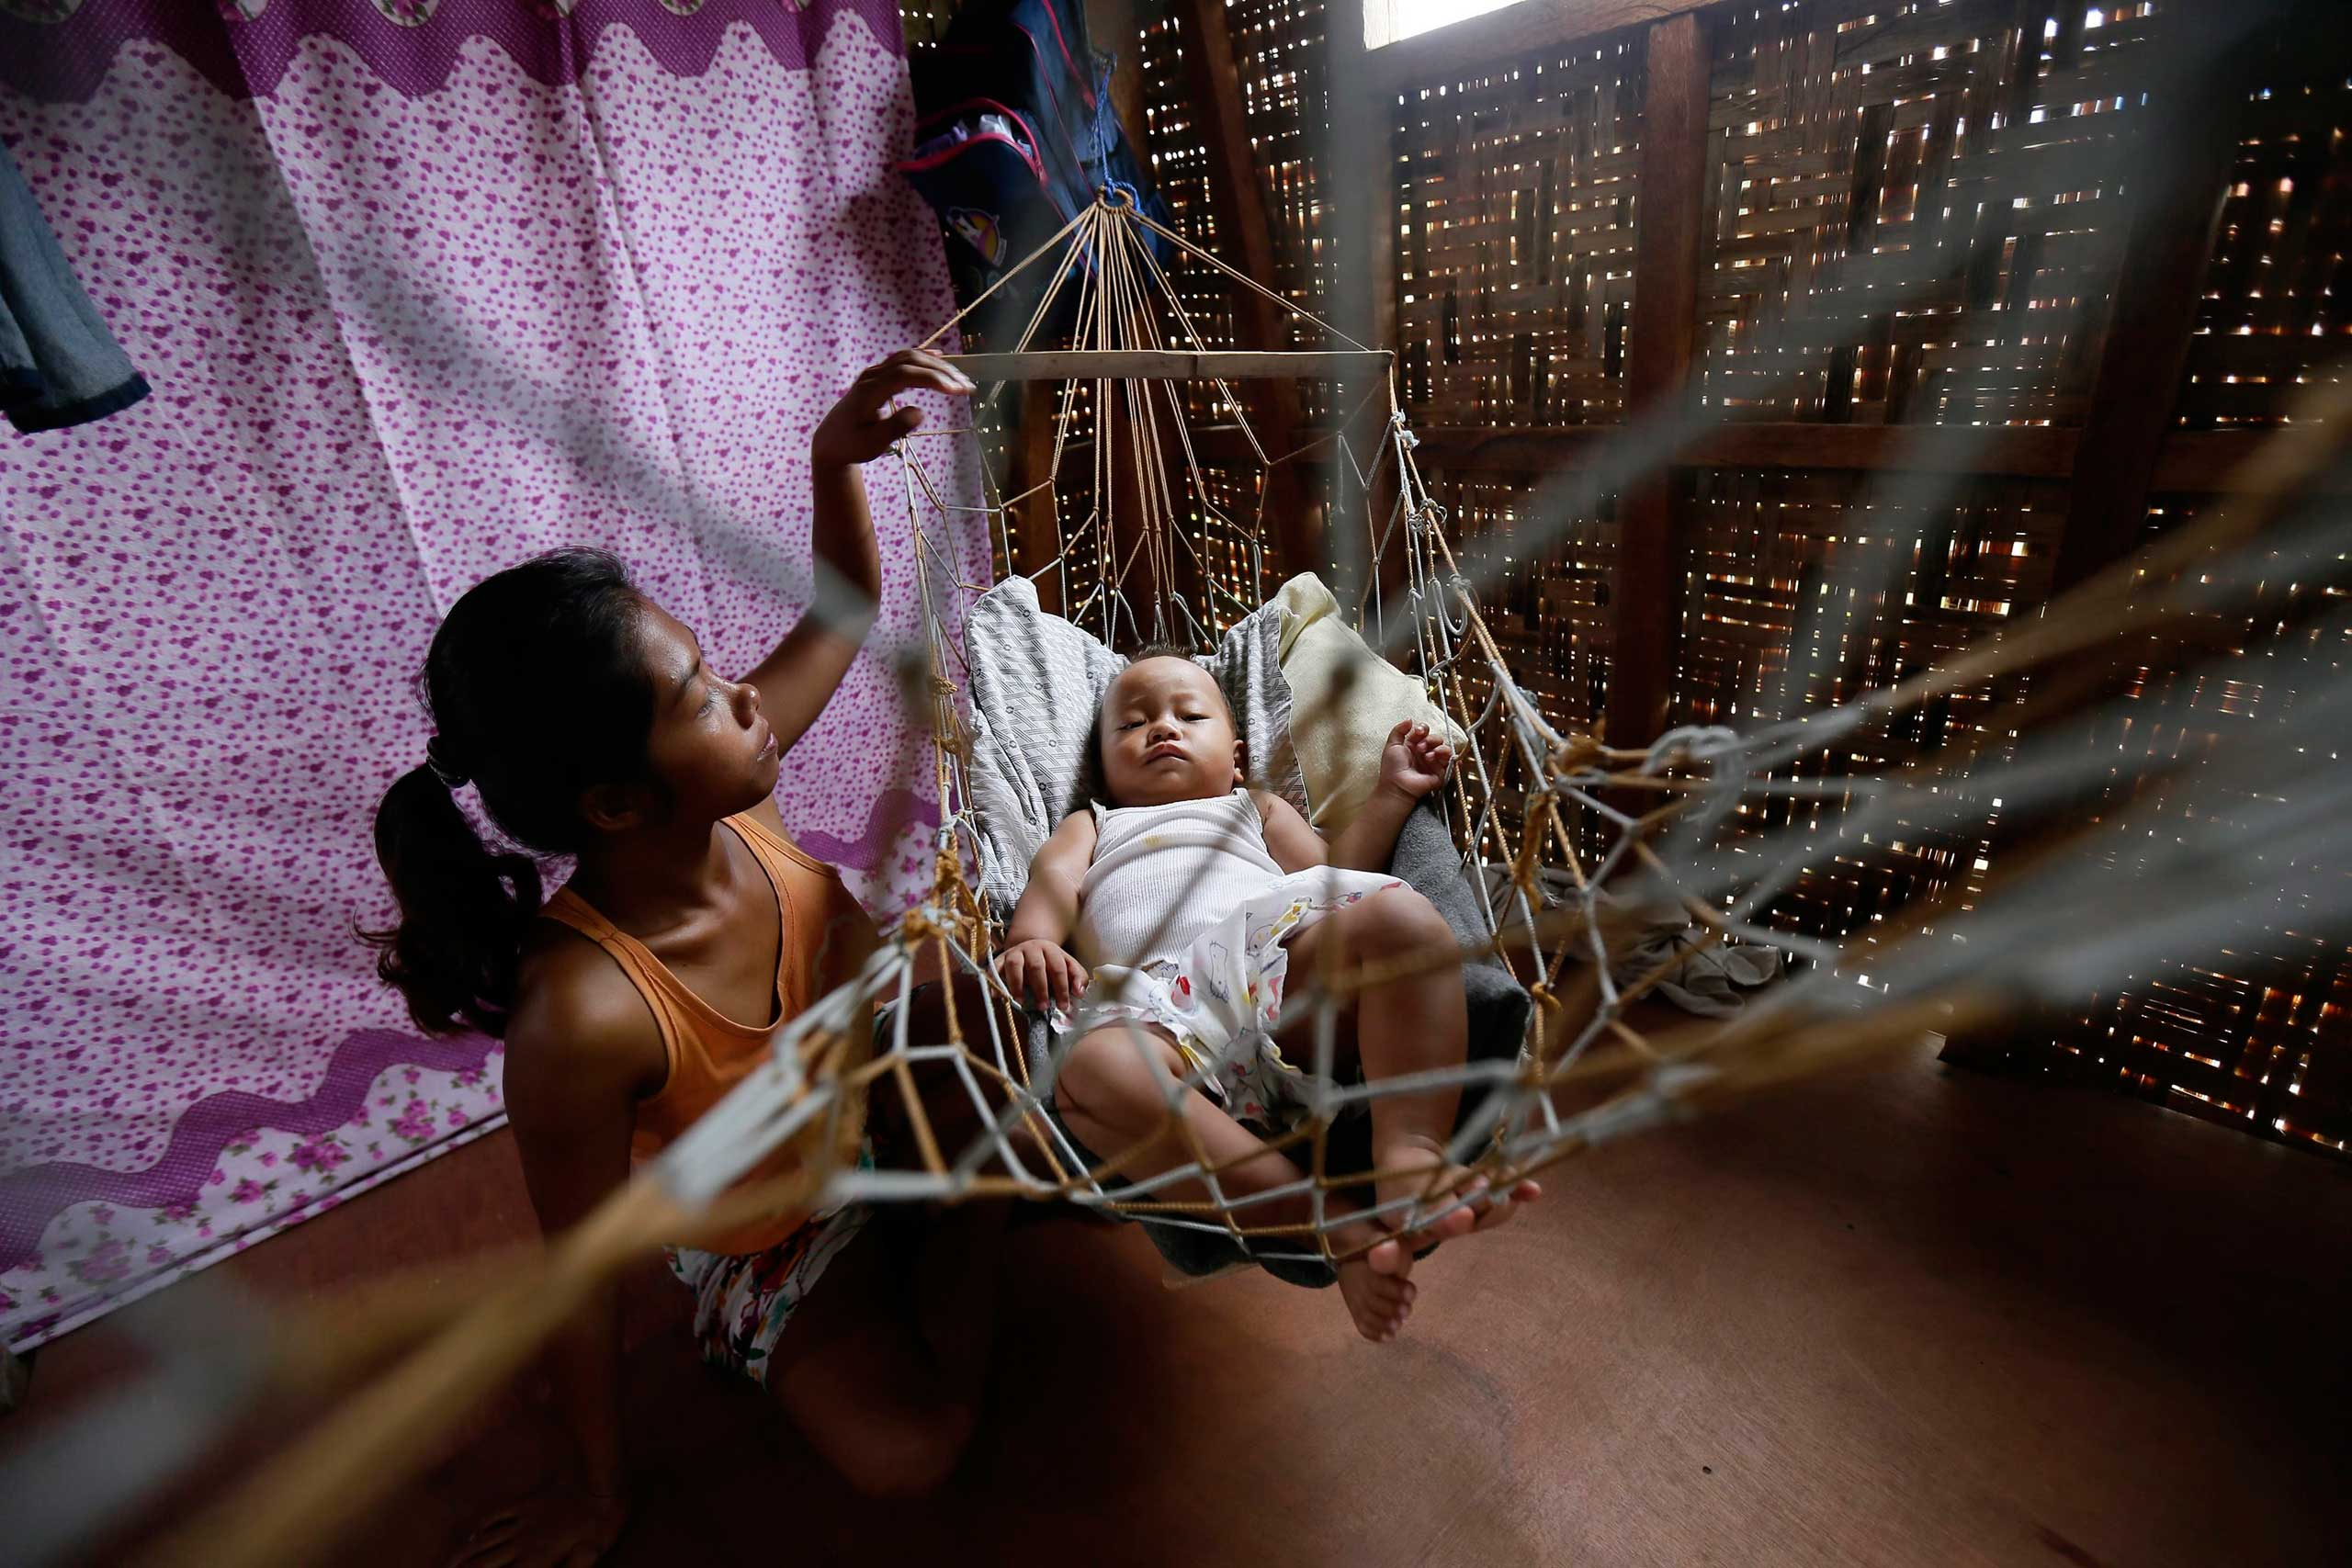 Nov 5, 2014. Emelie Sagales, 23, sits inside a hut next to her 1-year-old baby Bea Joy, who was born on Nov. 11, 2013, inside a dilapidated building which was damaged by the 2013 Typhoon Haiyan in Leyte Province, Philippines.